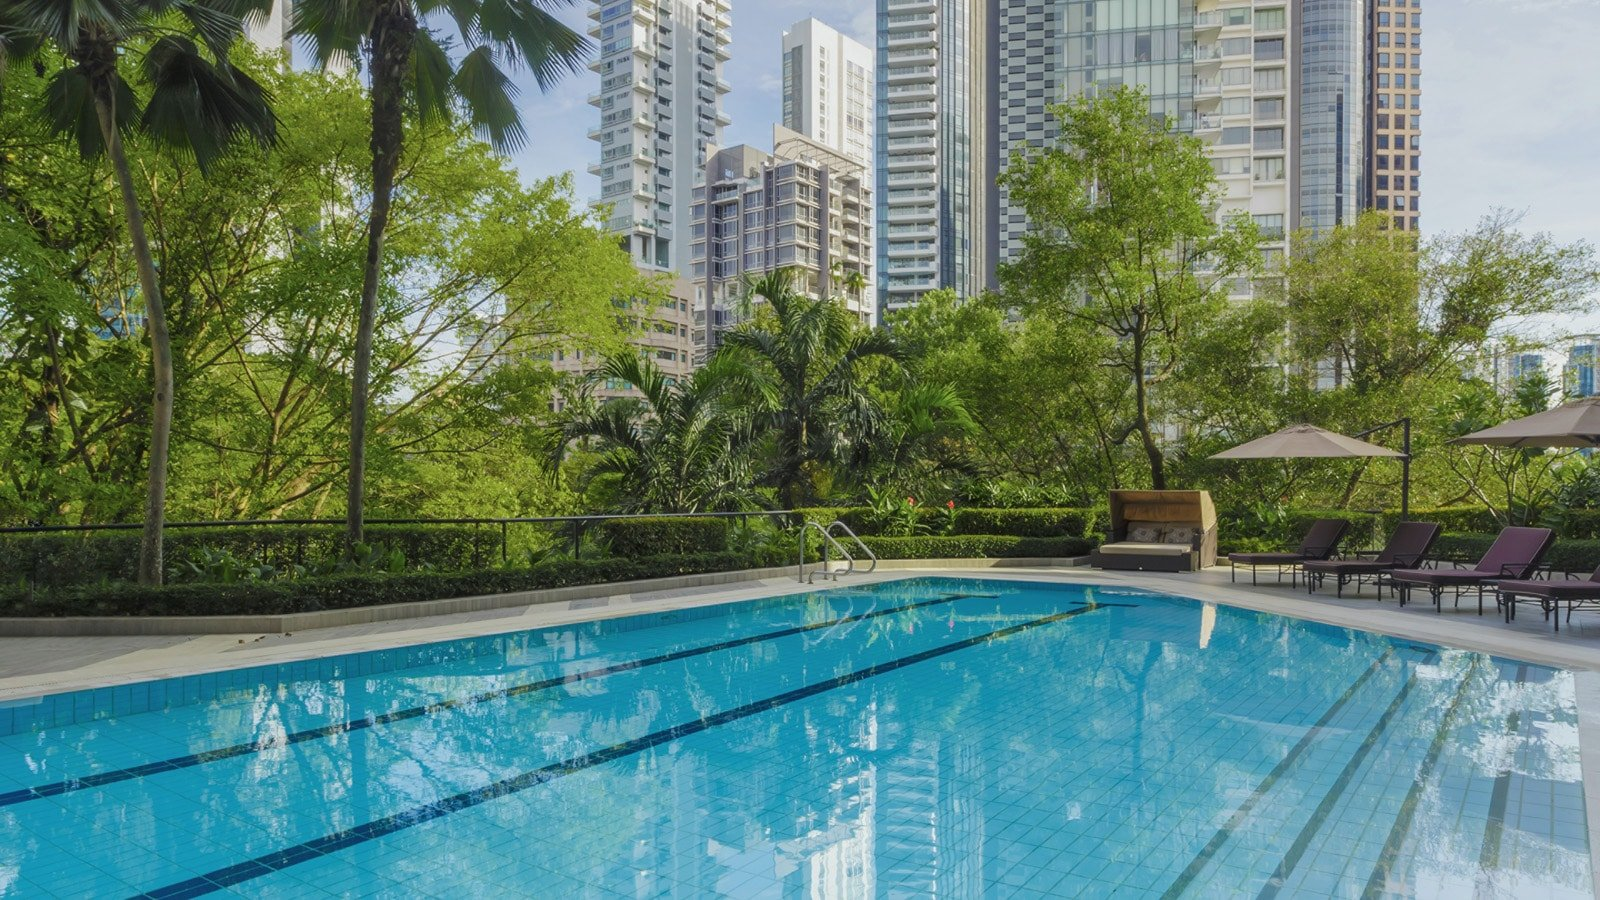 Fitness pool at Four Seasons Singapore